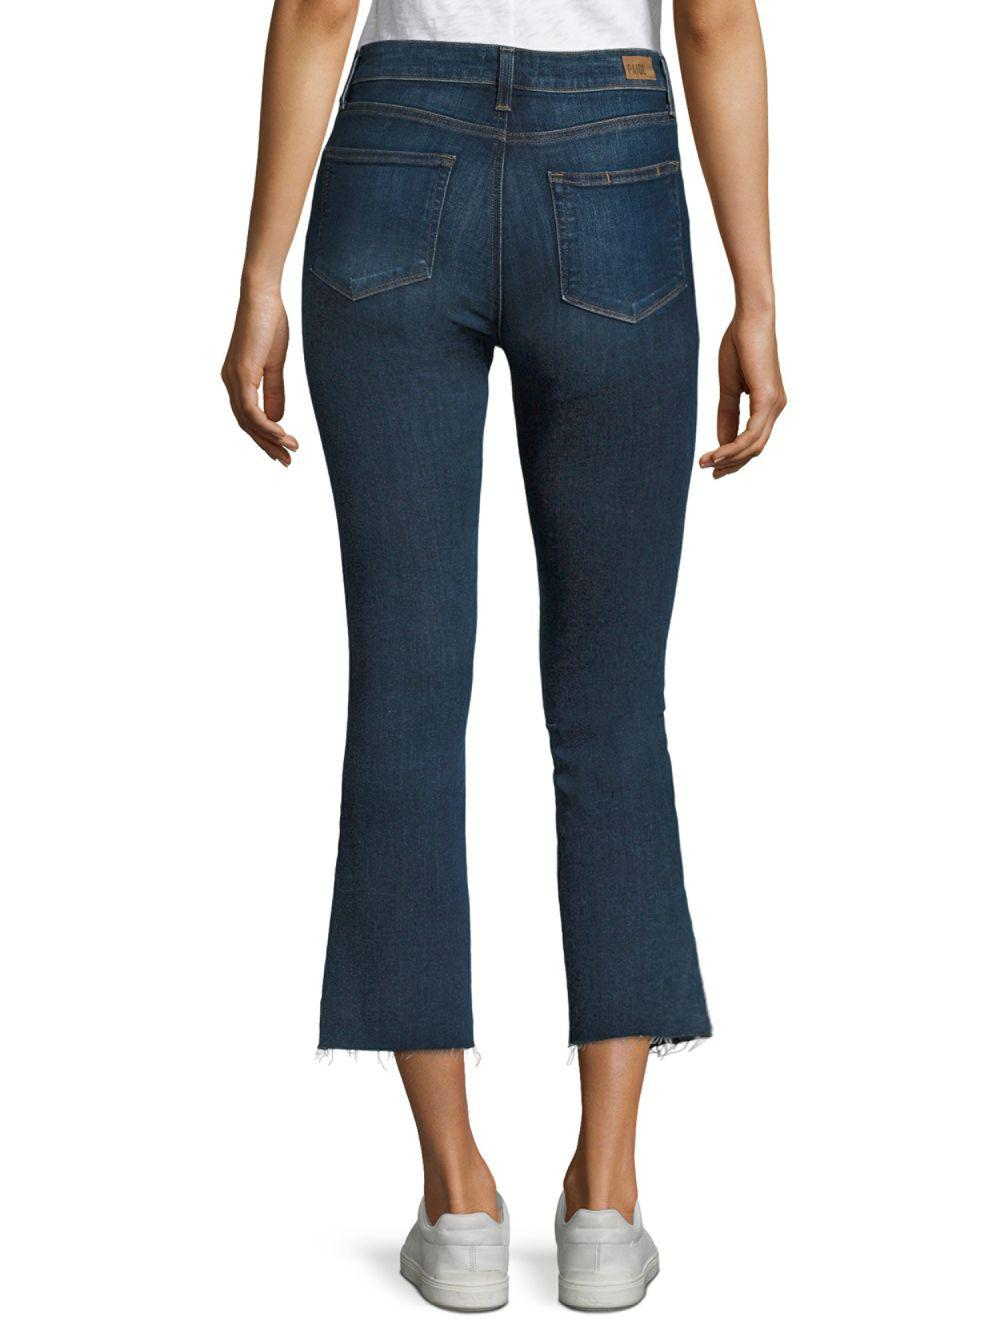 PAIGE Denim Colette Cropped Flared Jeans in Blue